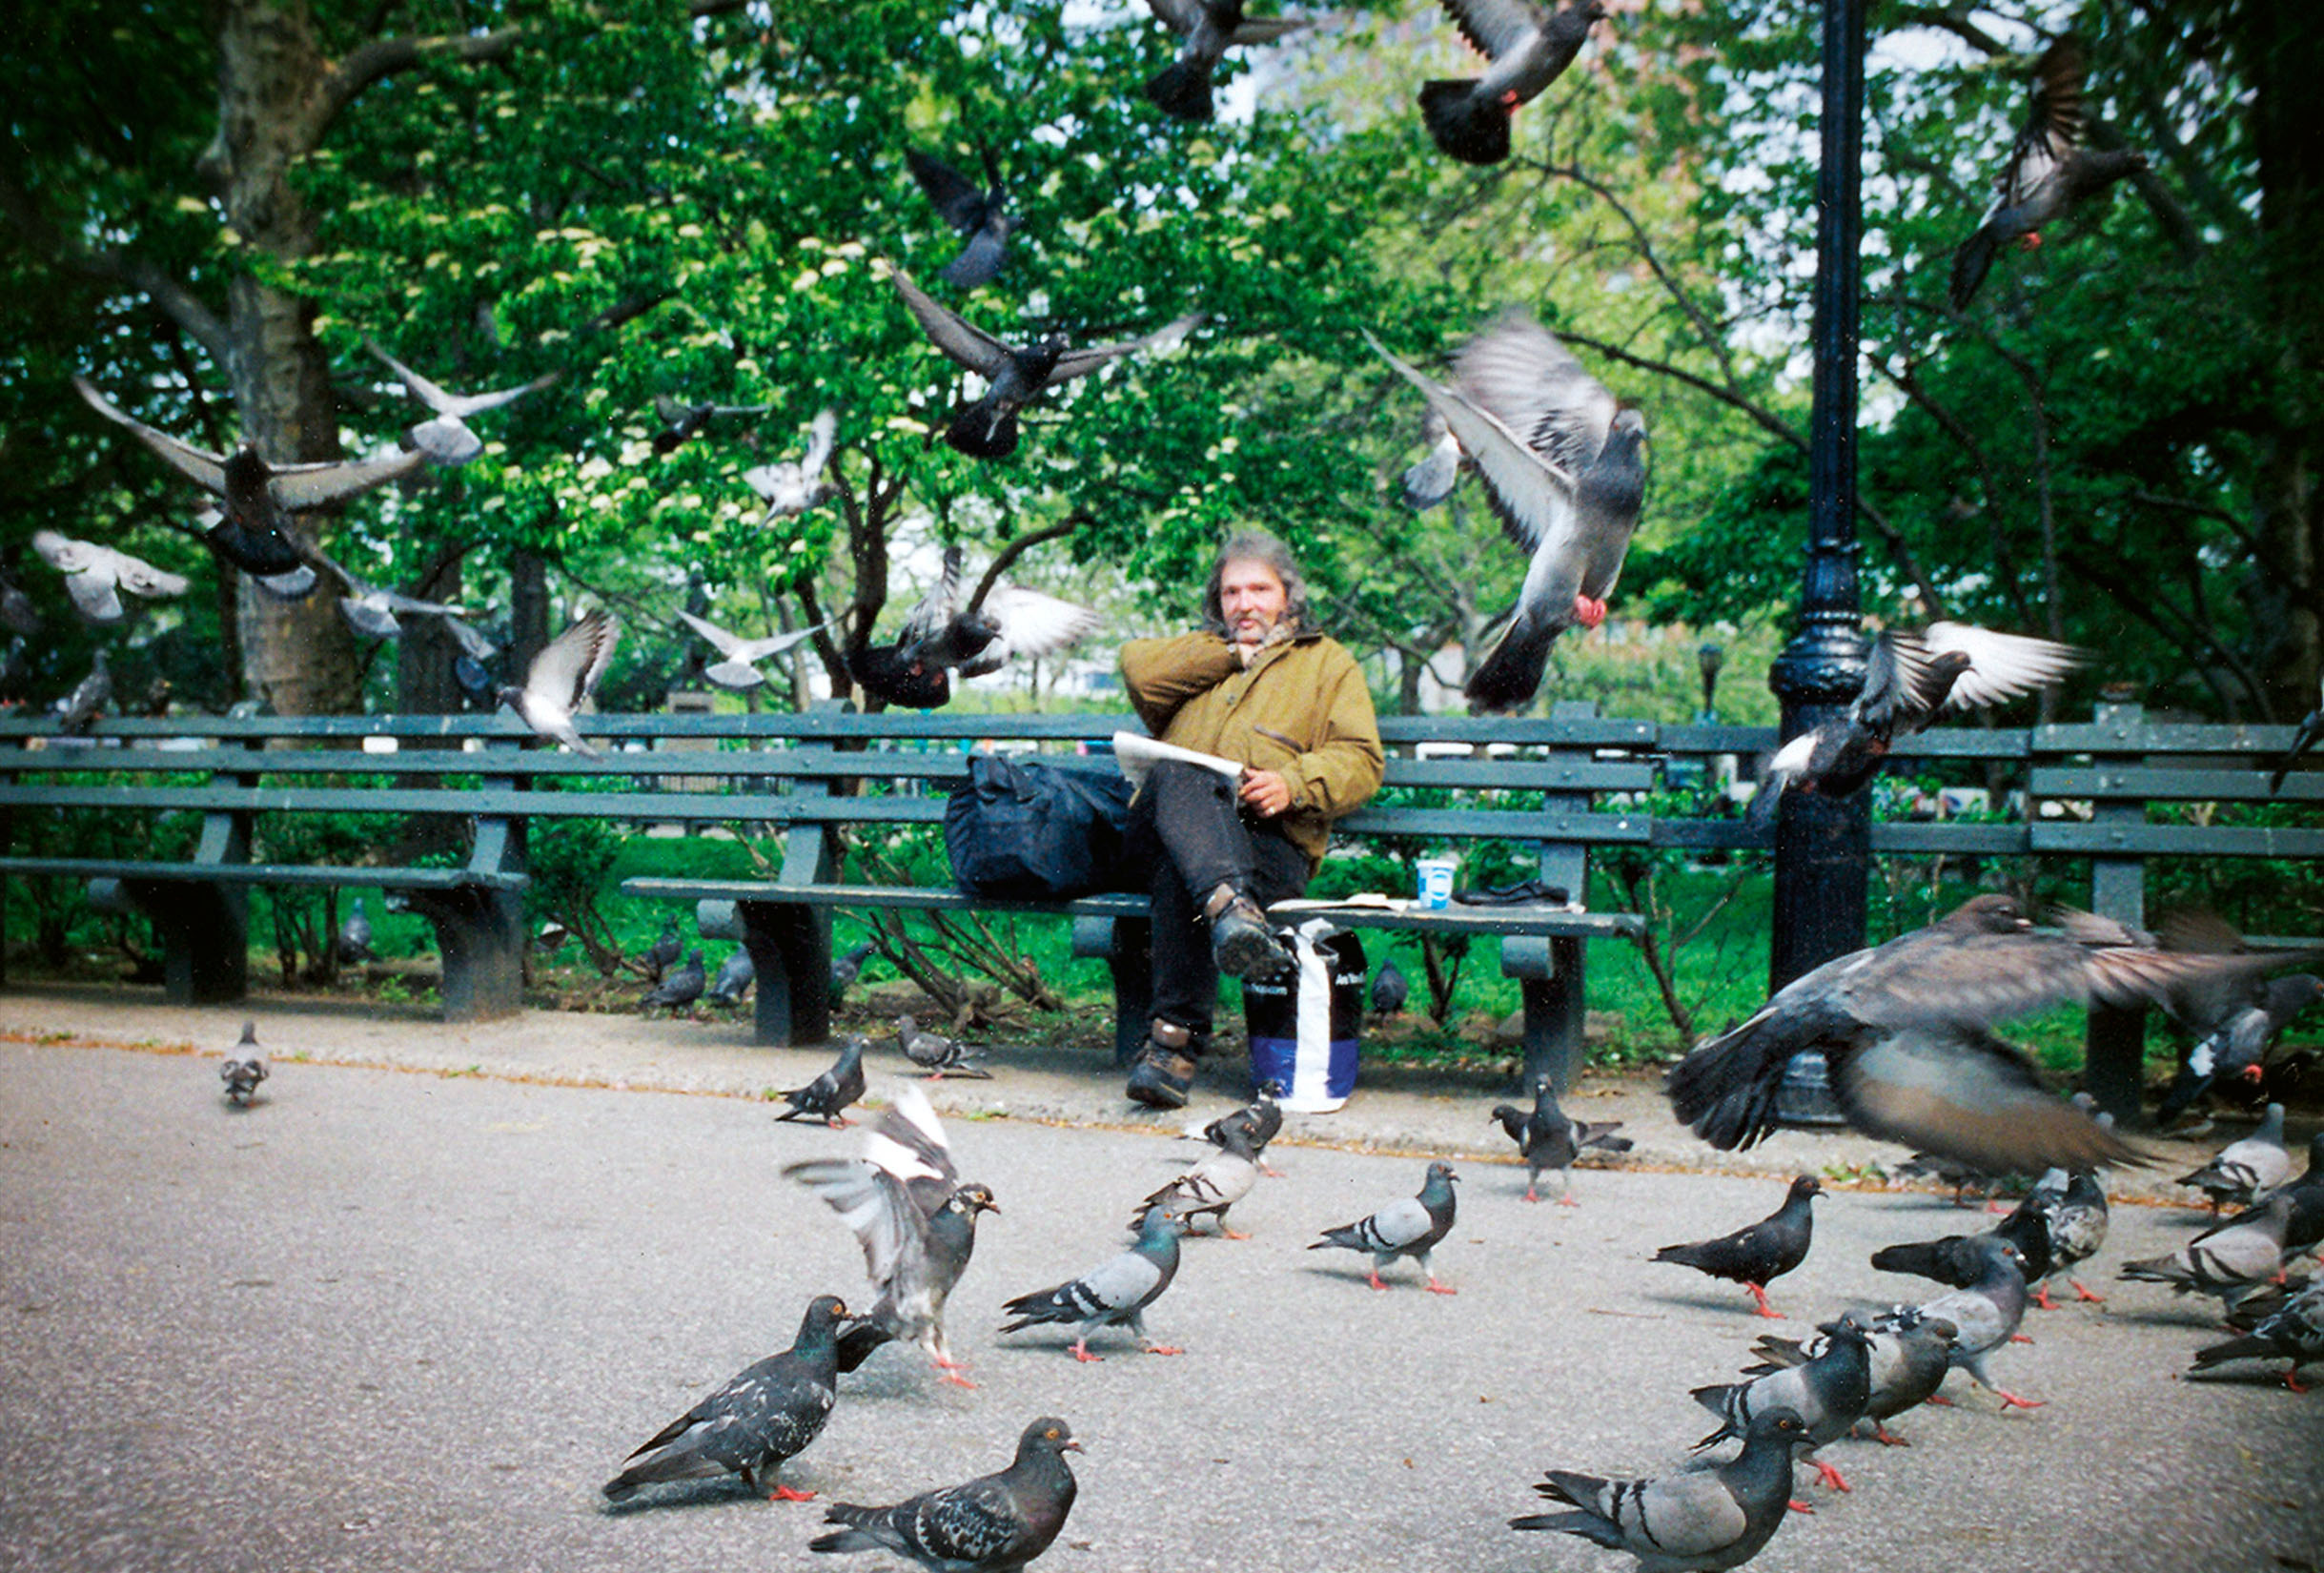 shane_deruise_new_york_birds.jpg